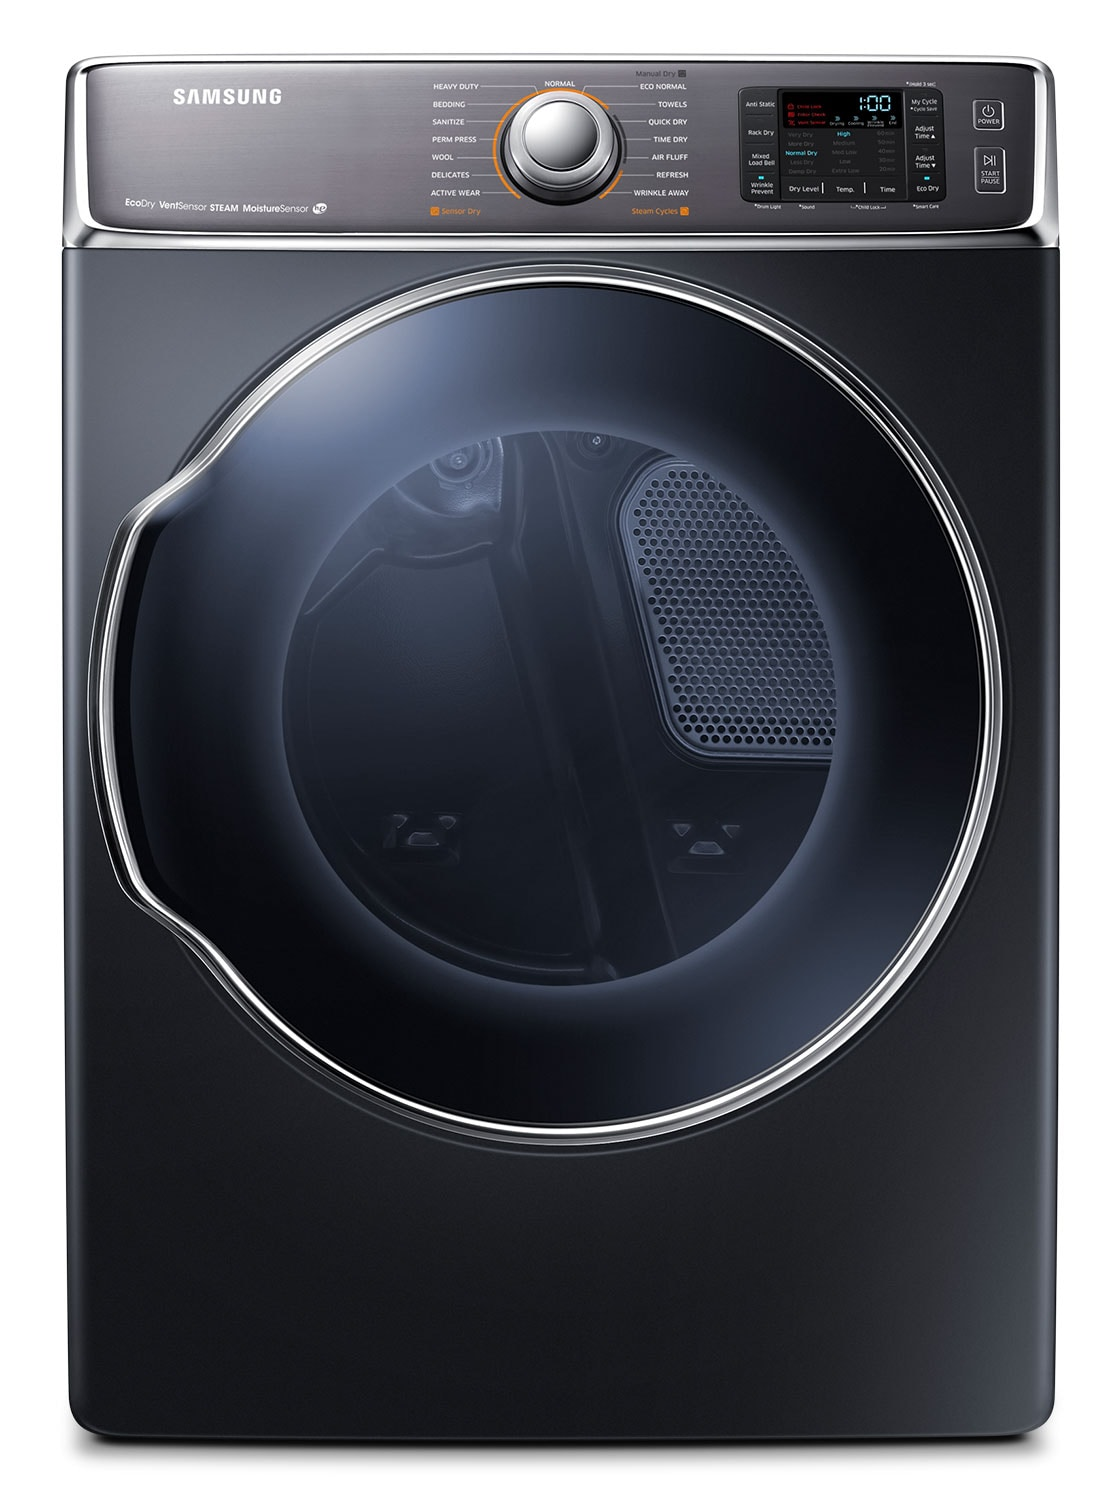 Washers and Dryers - Samsung Charcoal Electric Dryer (9.5 Cu. Ft.) - DV56H9100EG